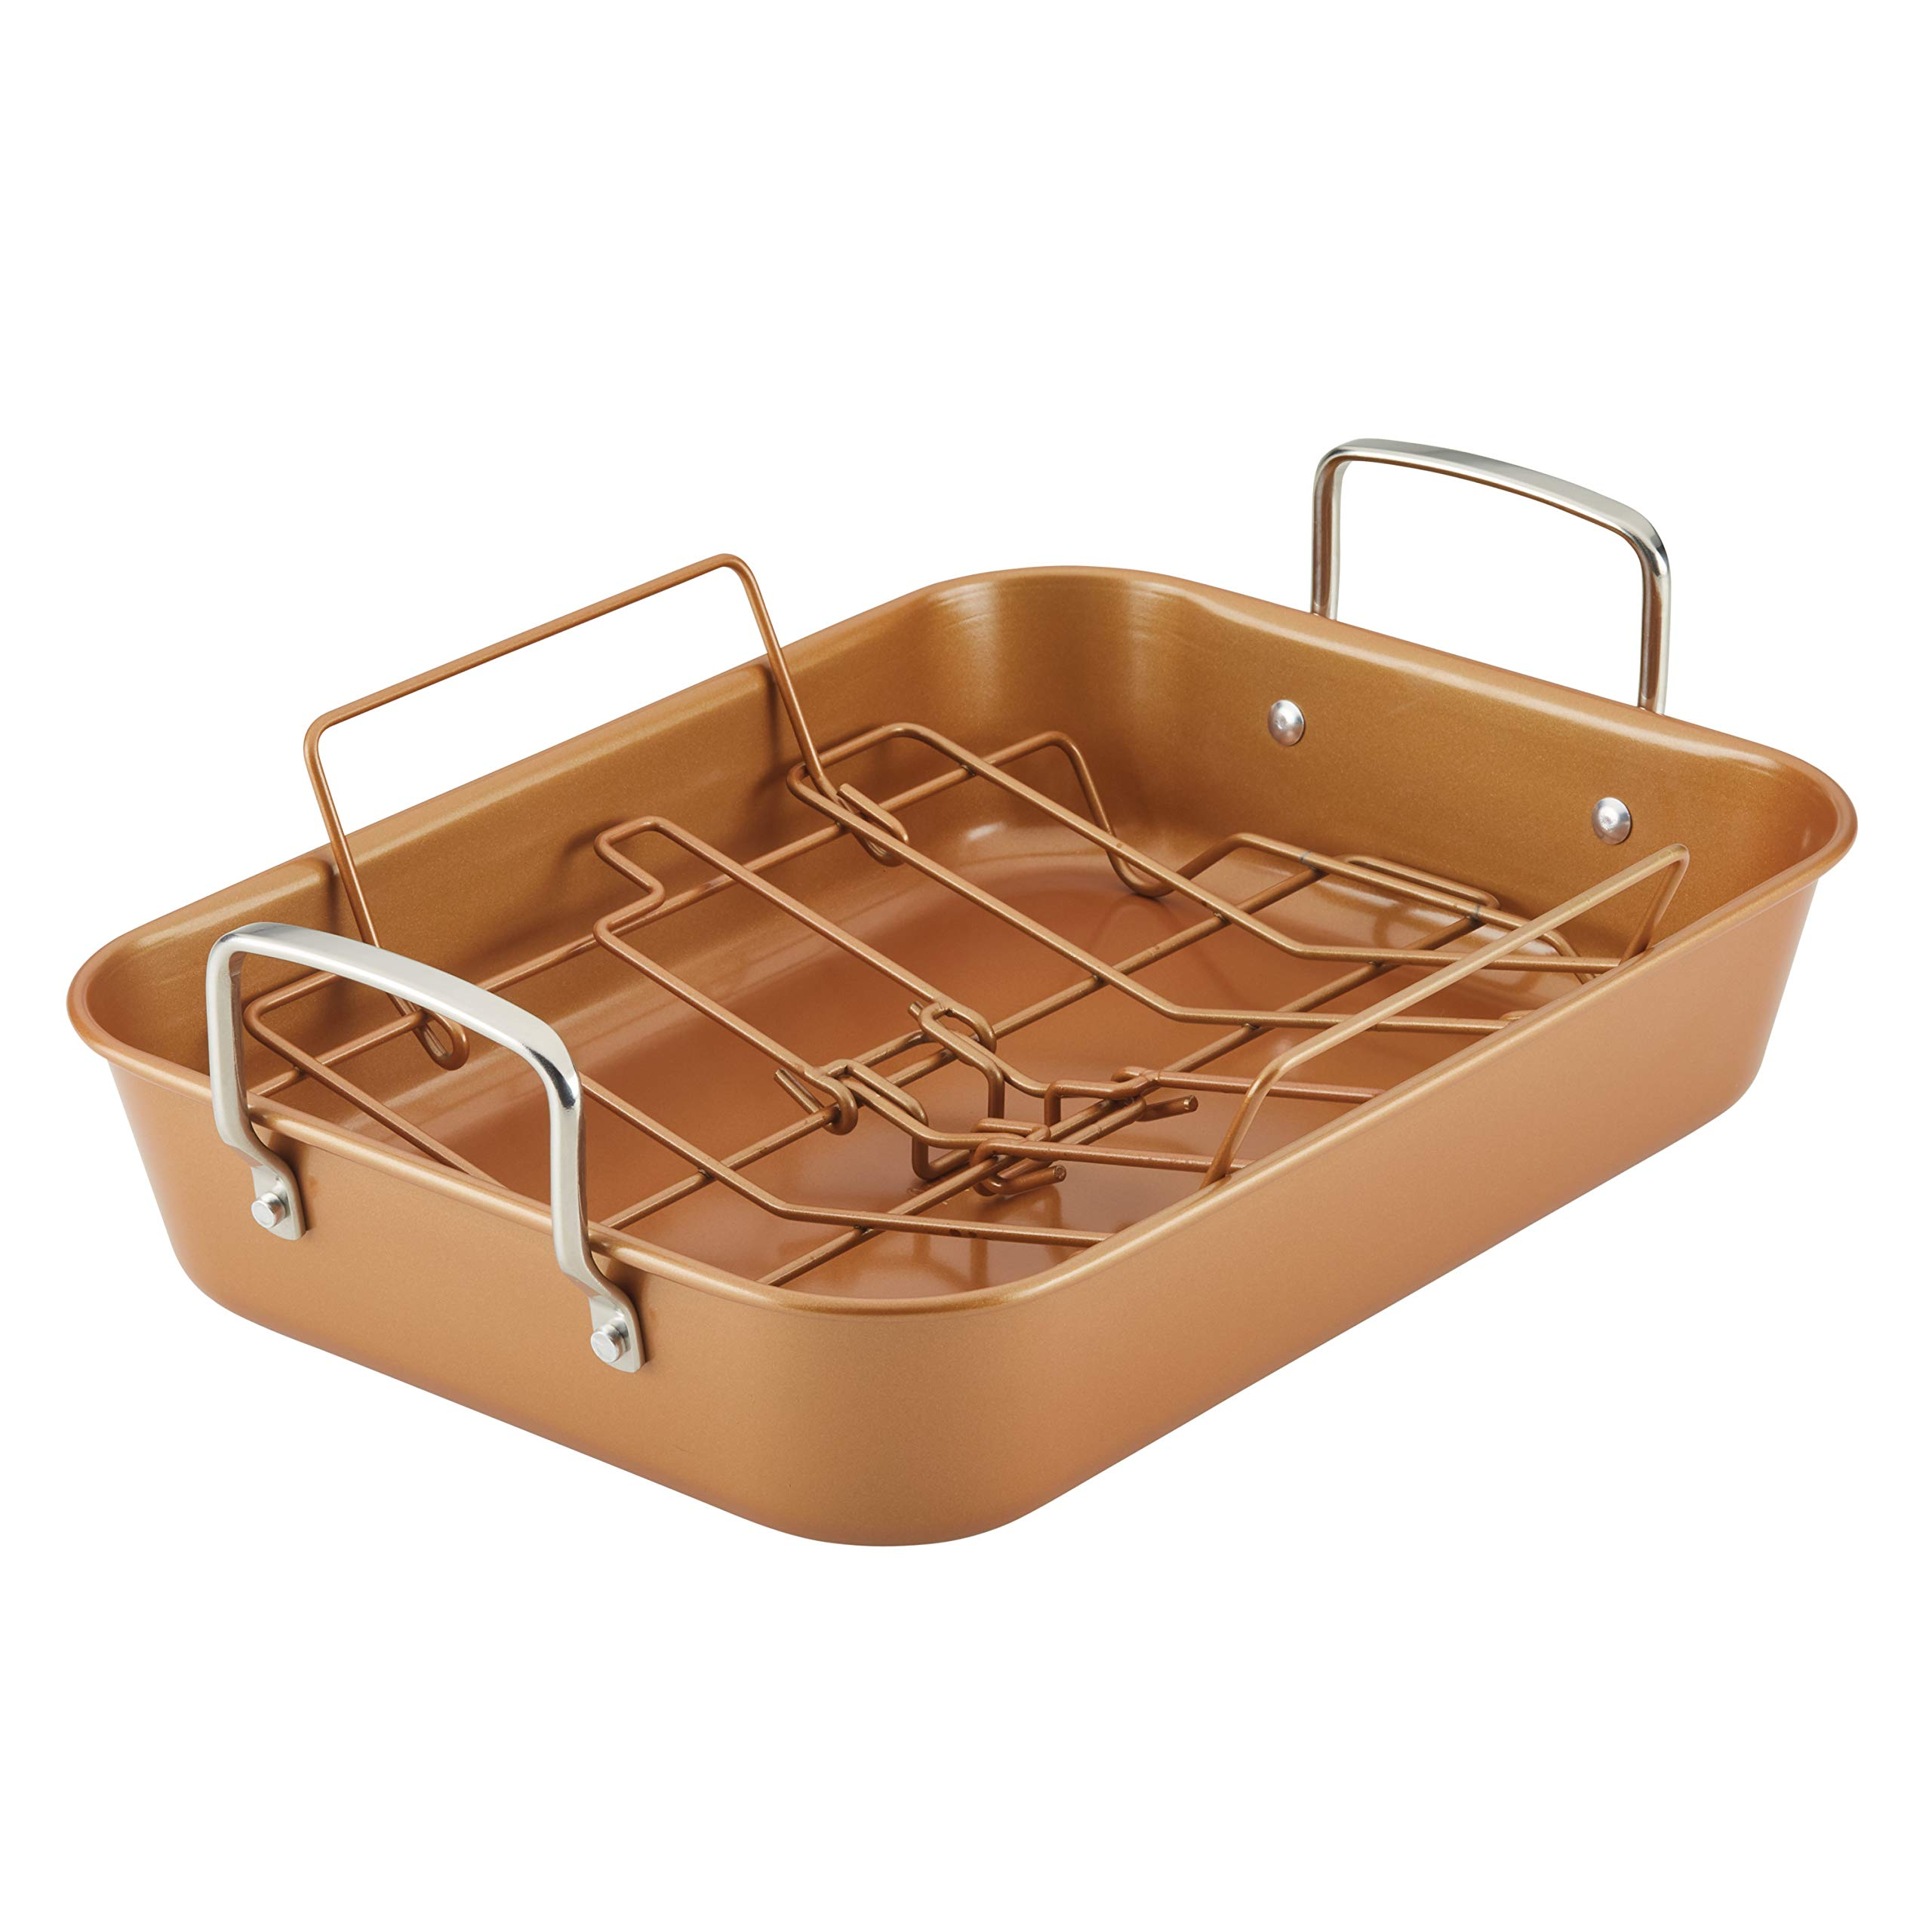 Ayesha Curry 47792 11'' x 15'' Rack Steel Roaster, 11 Inch x 15 Inch, Copper by Ayesha Curry Kitchenware (Image #1)